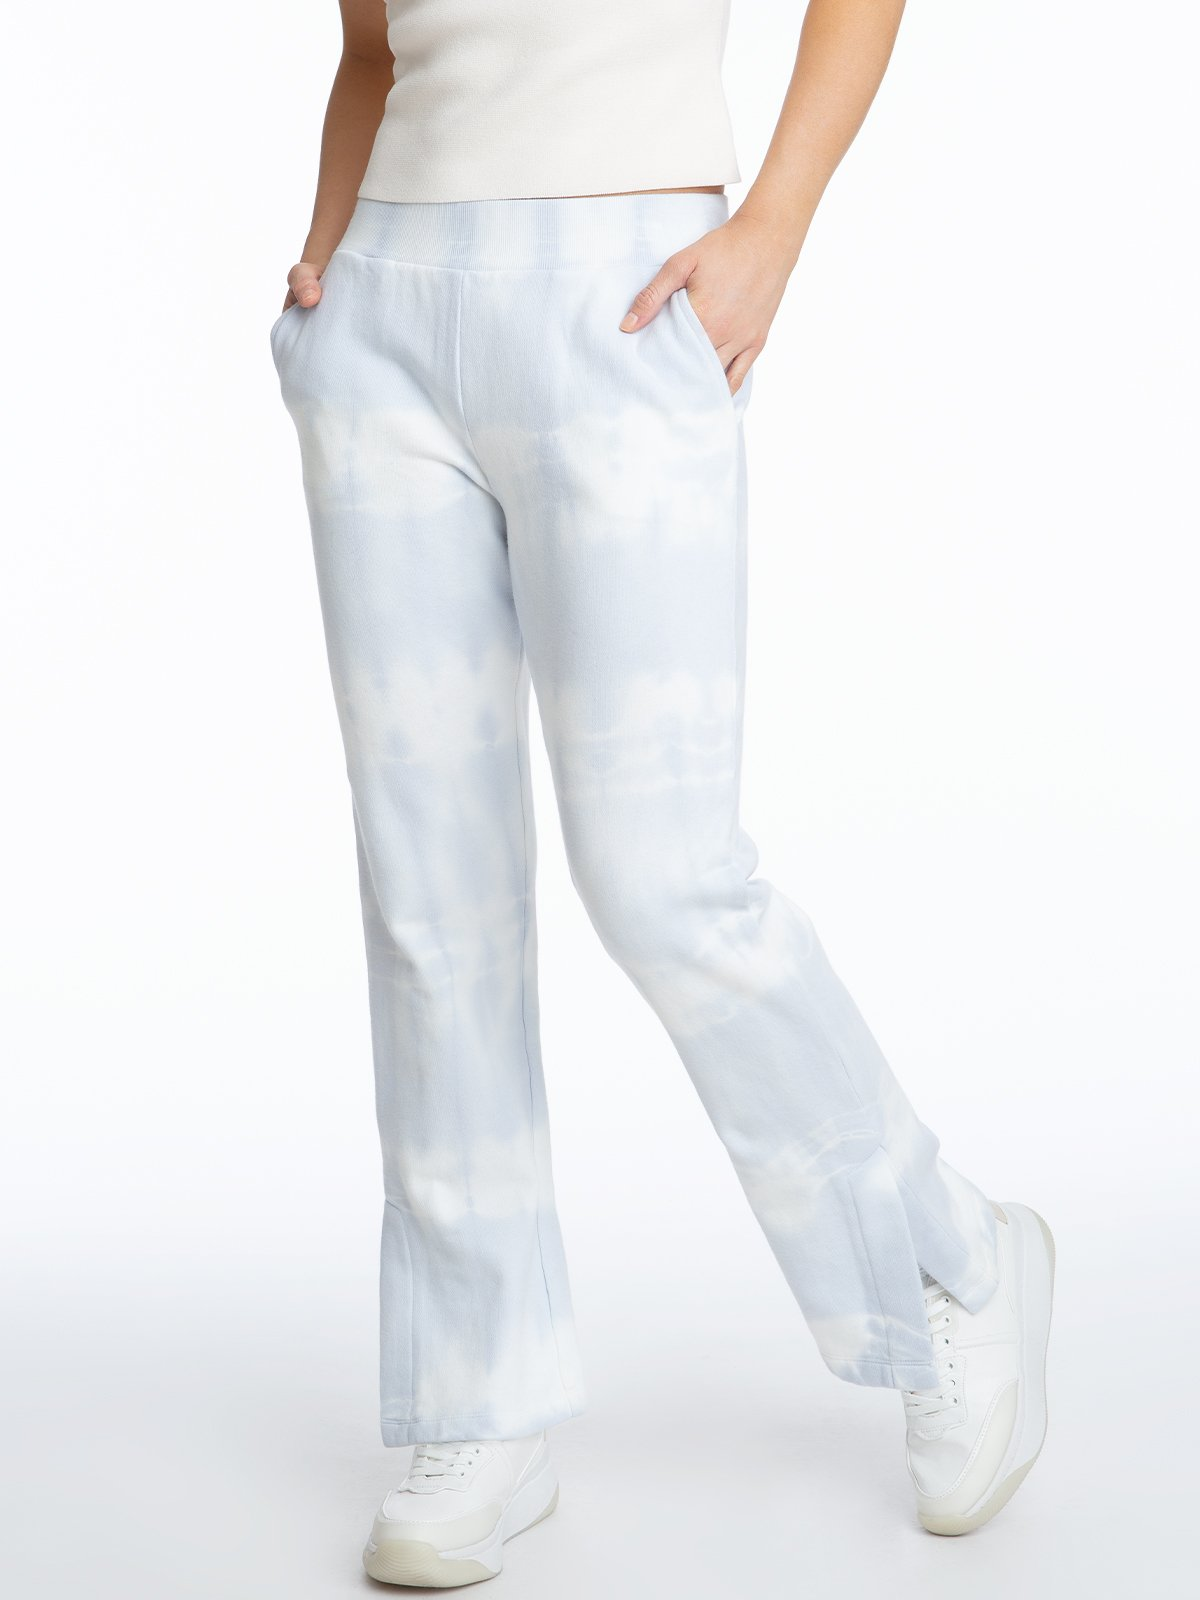 Tie Dye Pant with Slit - Blue Cloud Multi